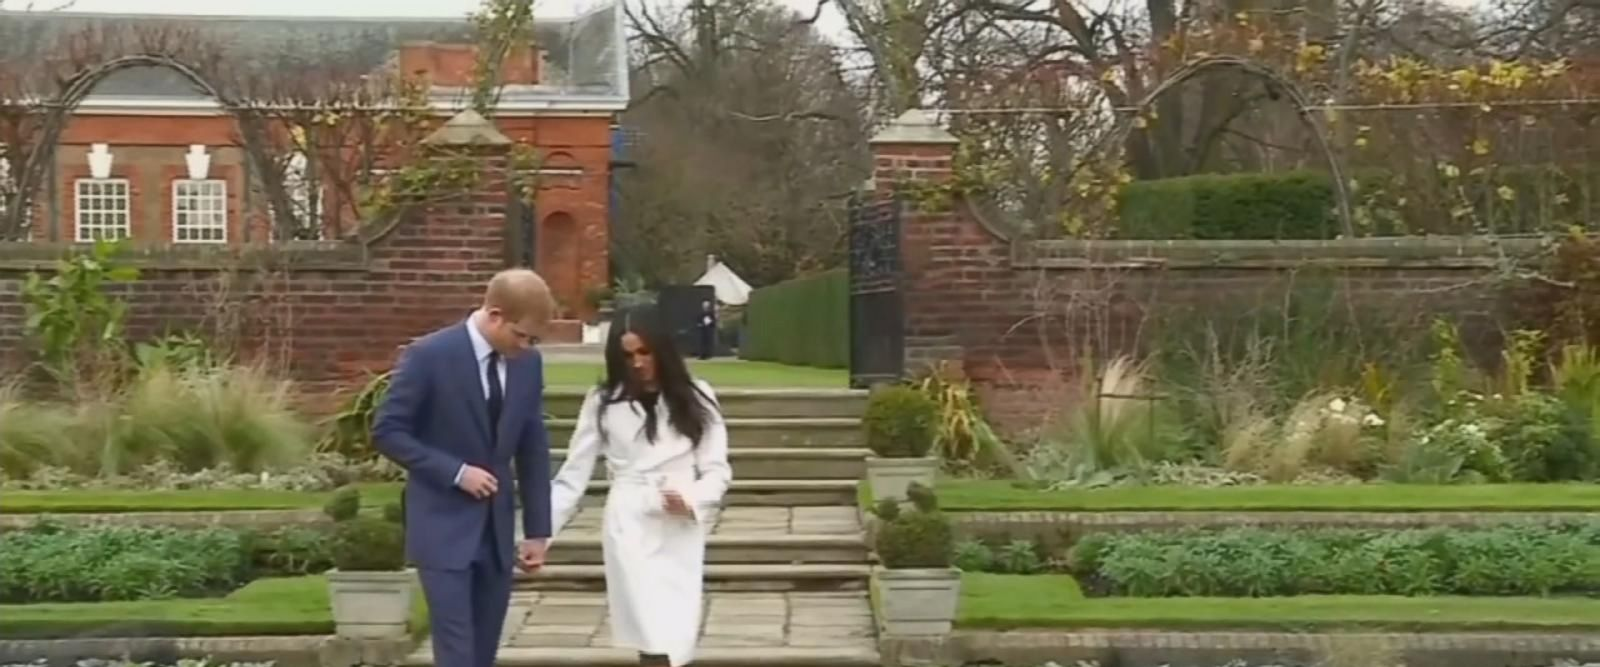 VIDEO: Meghan Markle will join Prince Harry for Christmas Day service